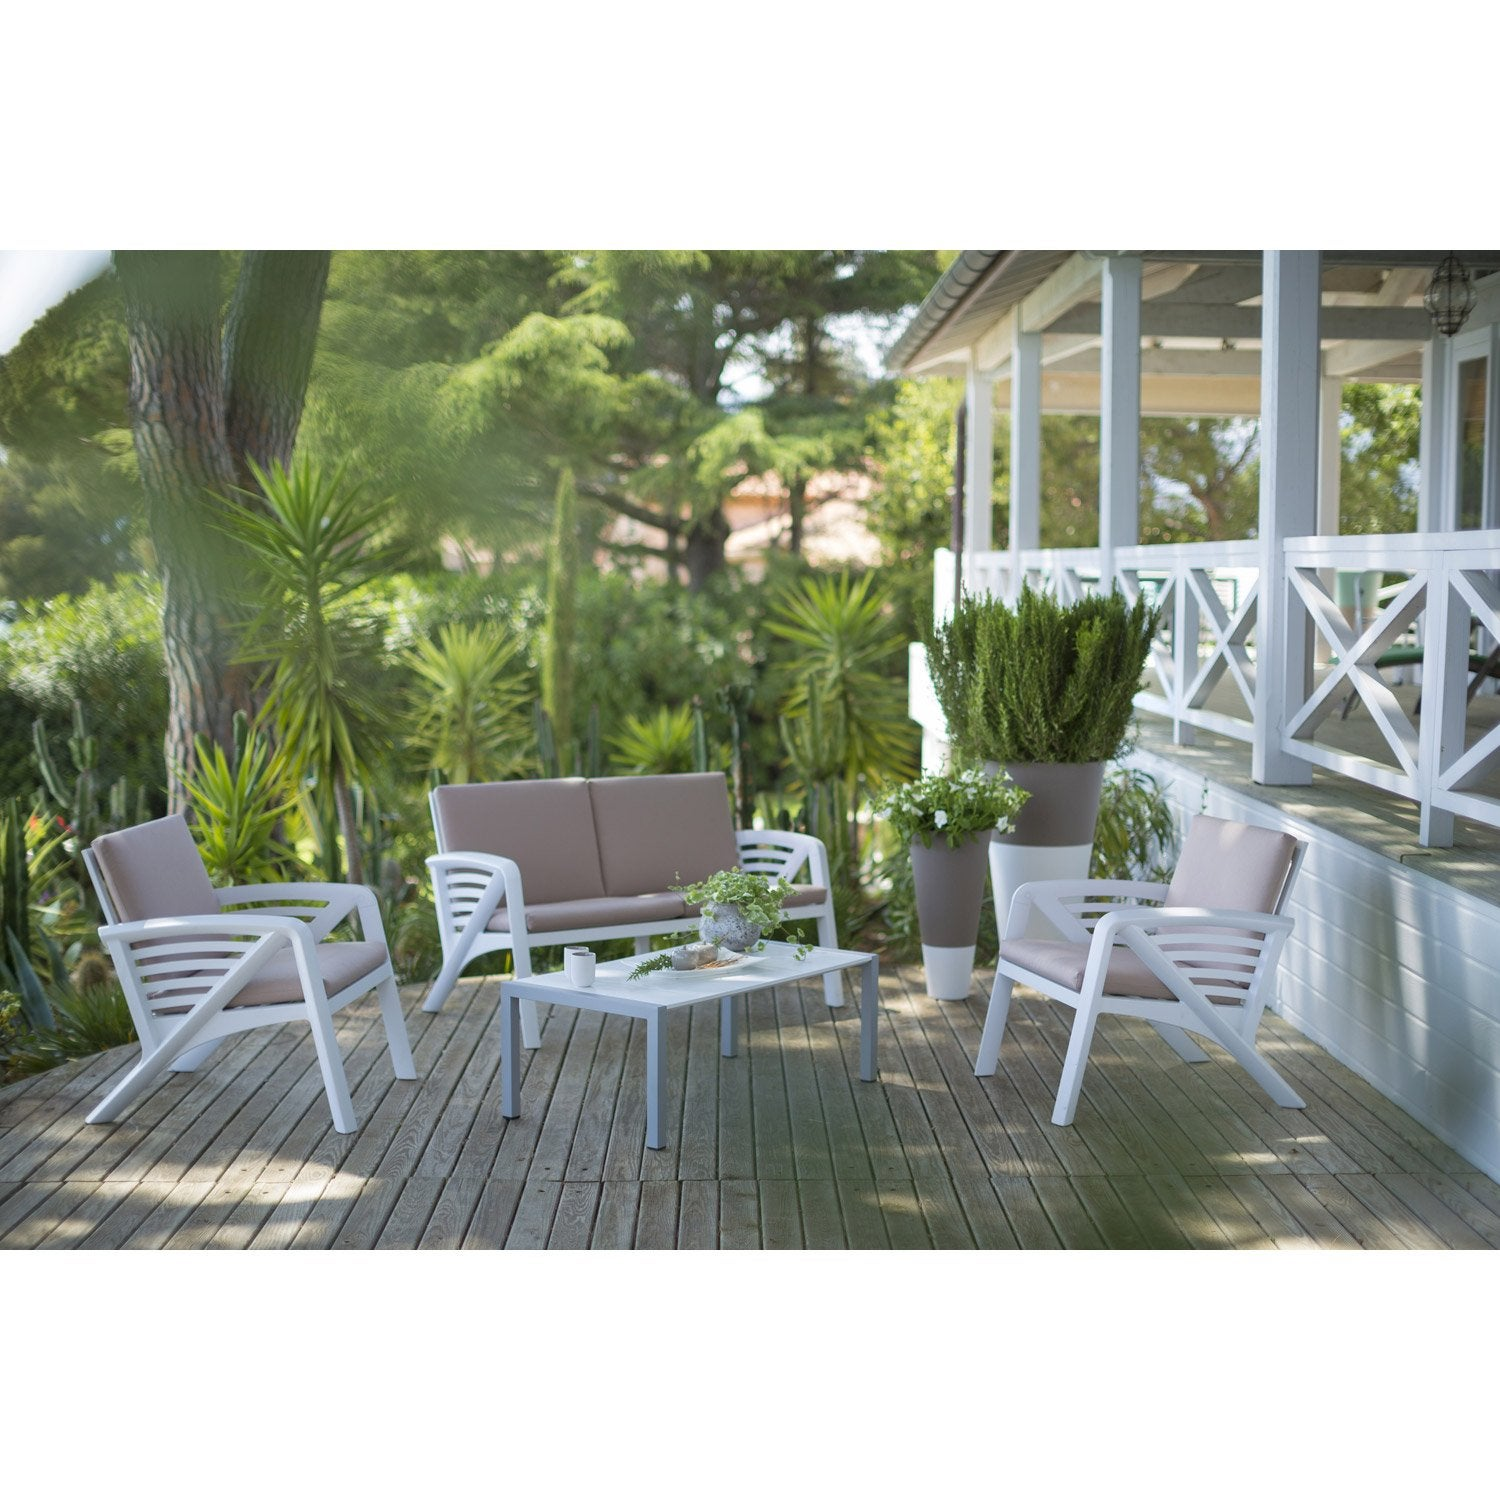 Salon bas de jardin sunday r sine plastique table - Salon de jardin en resine leroy merlin ...